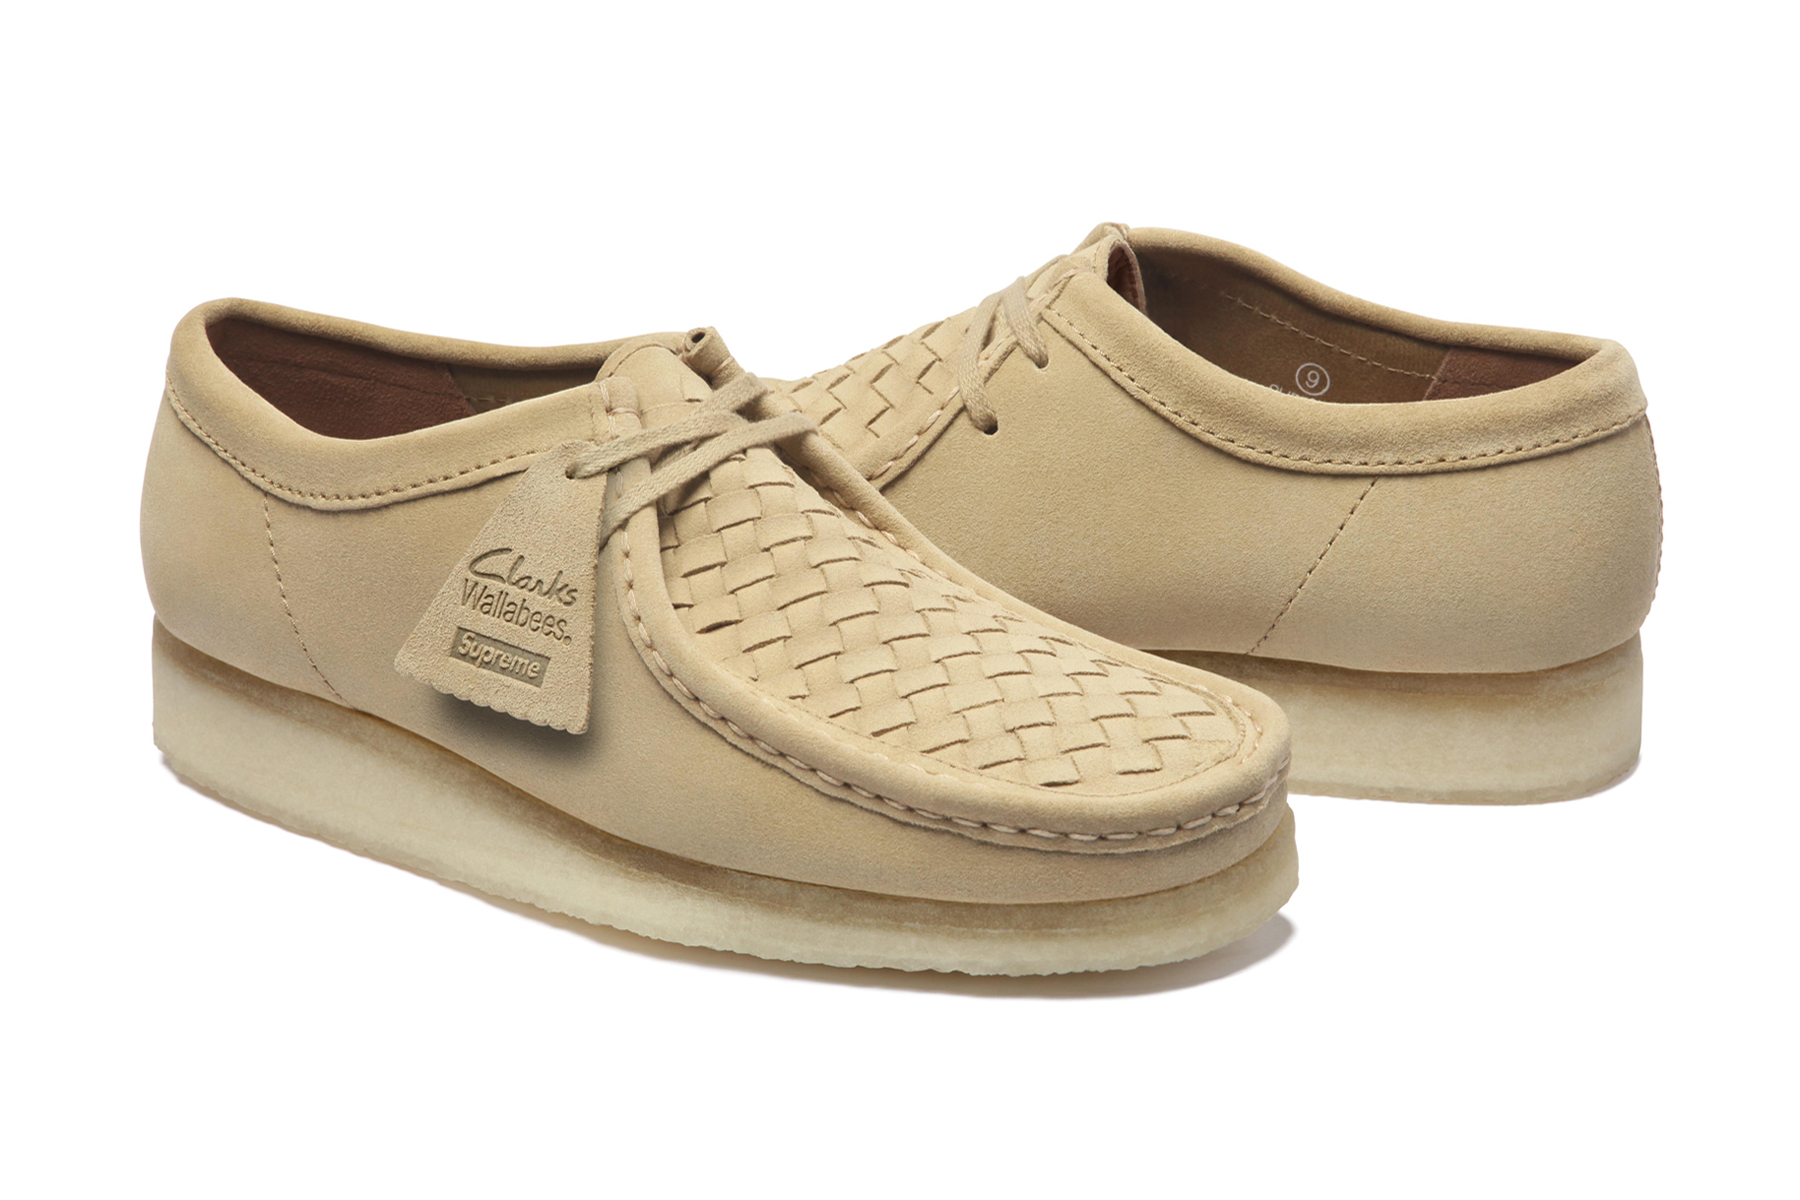 supreme x clarks low cut natural